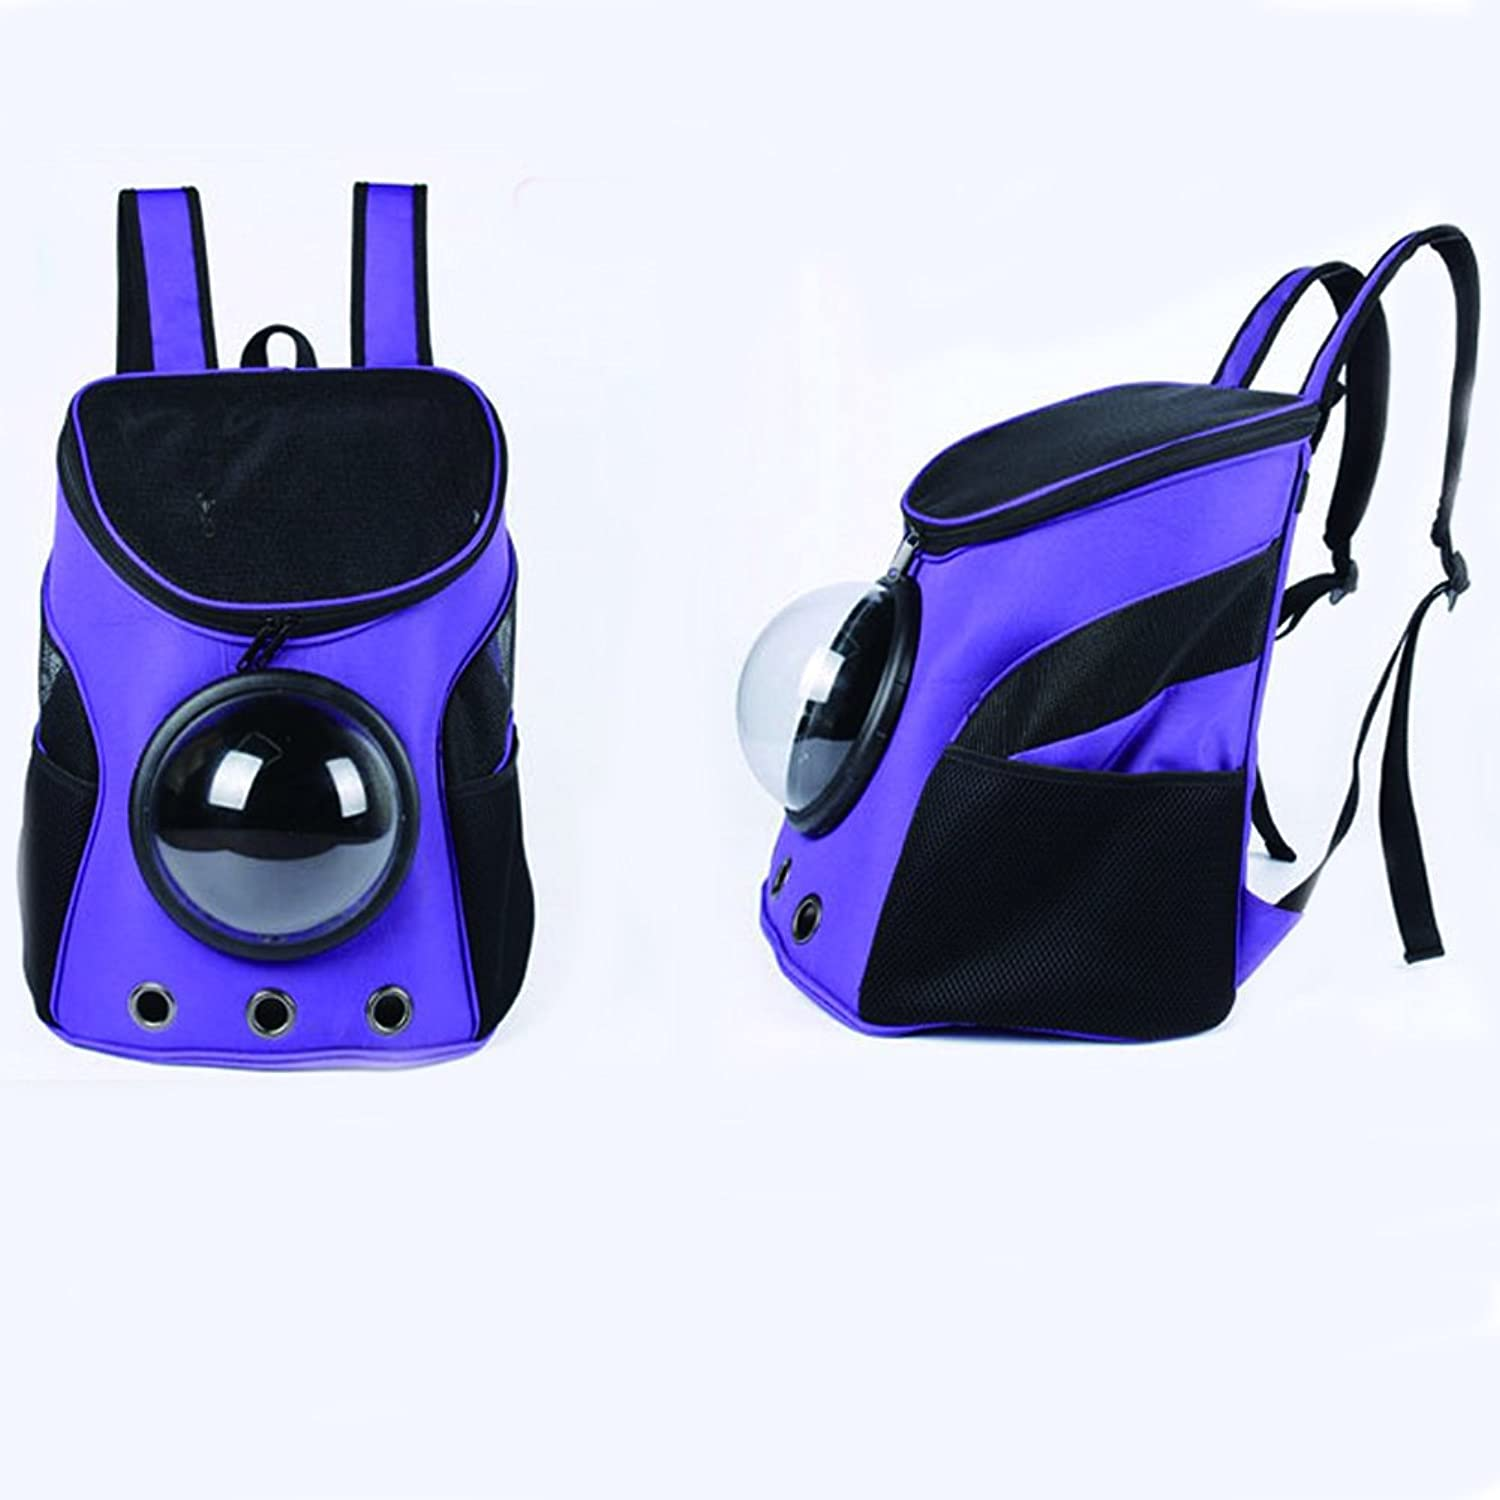 Pet Portable Carrier Space Capsule Backpack PU Leather Dog Cat Small Animals Travel Bag